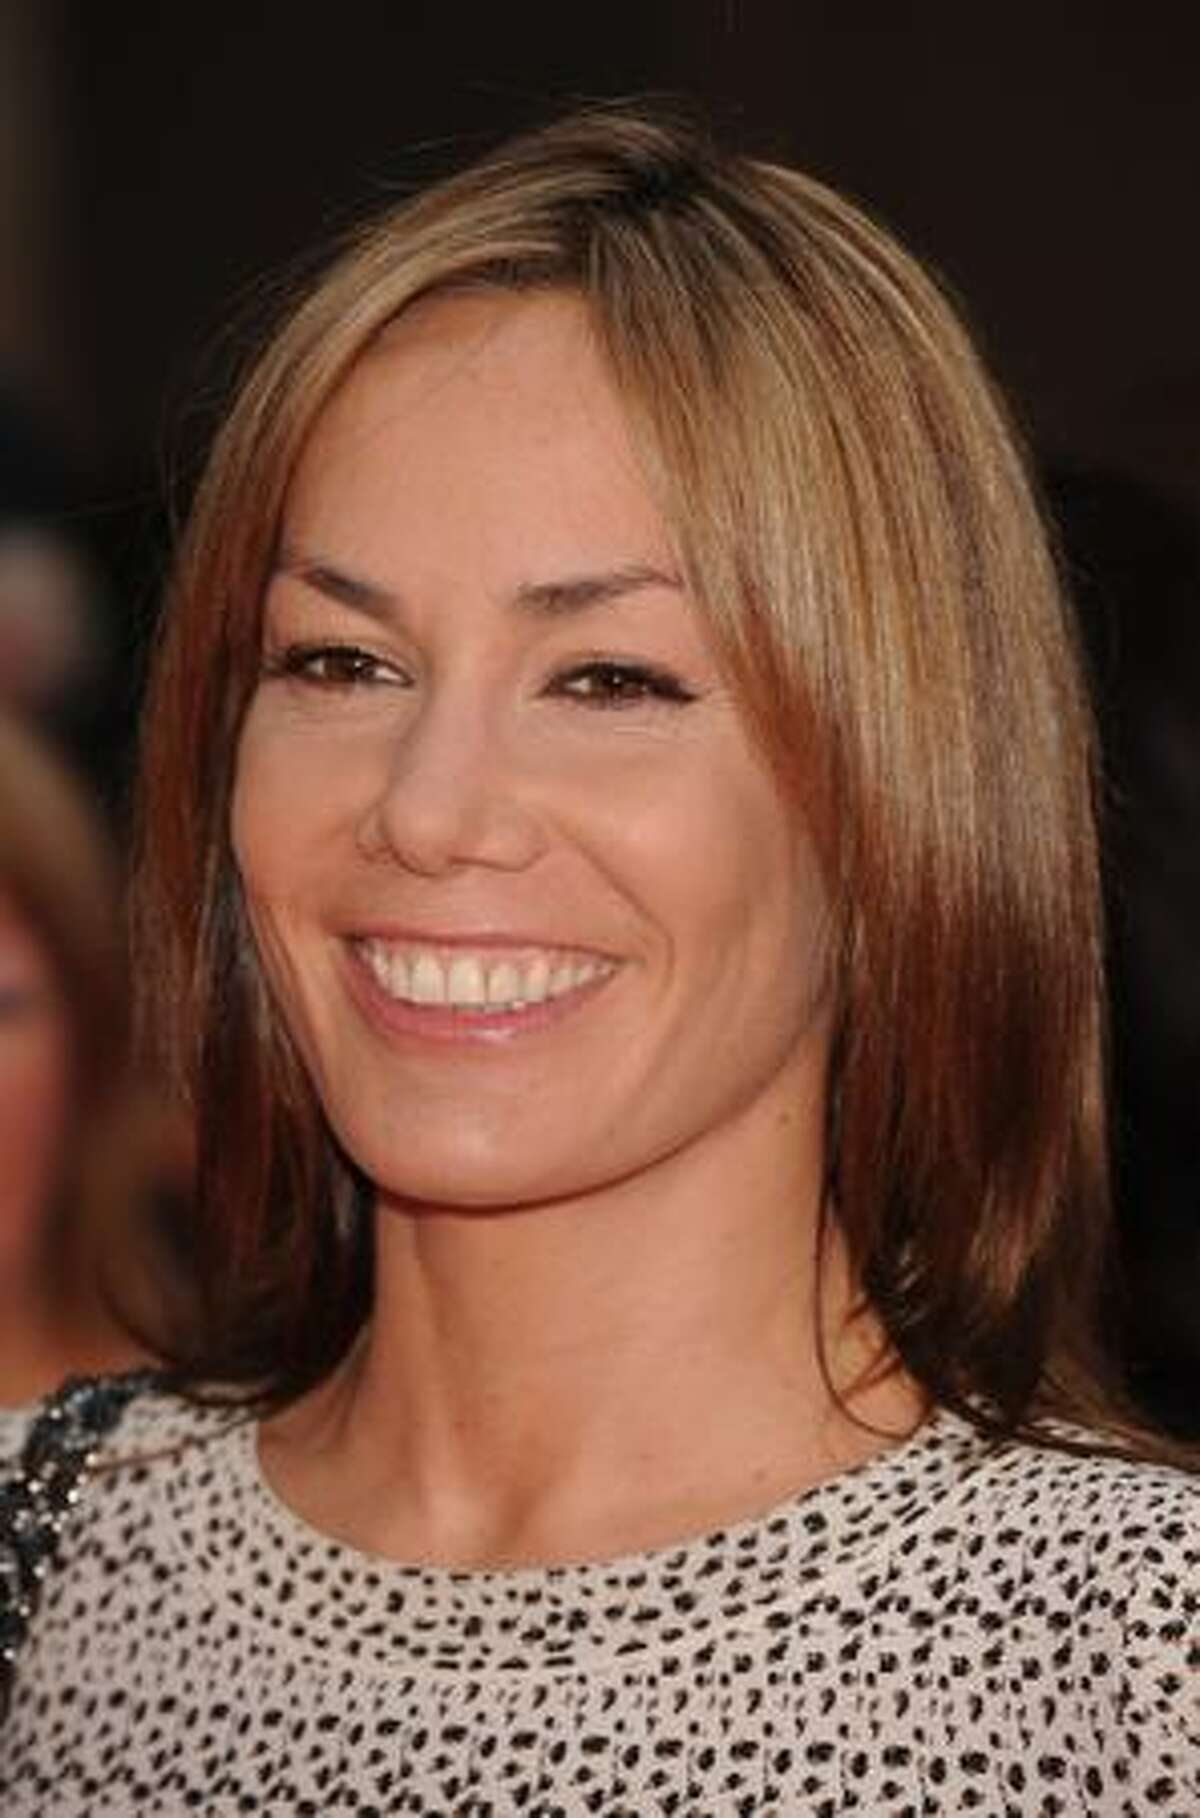 Tara Palmer Tomkinson attends the Pride of Britain Awards at the Grosvenor House Hotel on Monday in London, England.